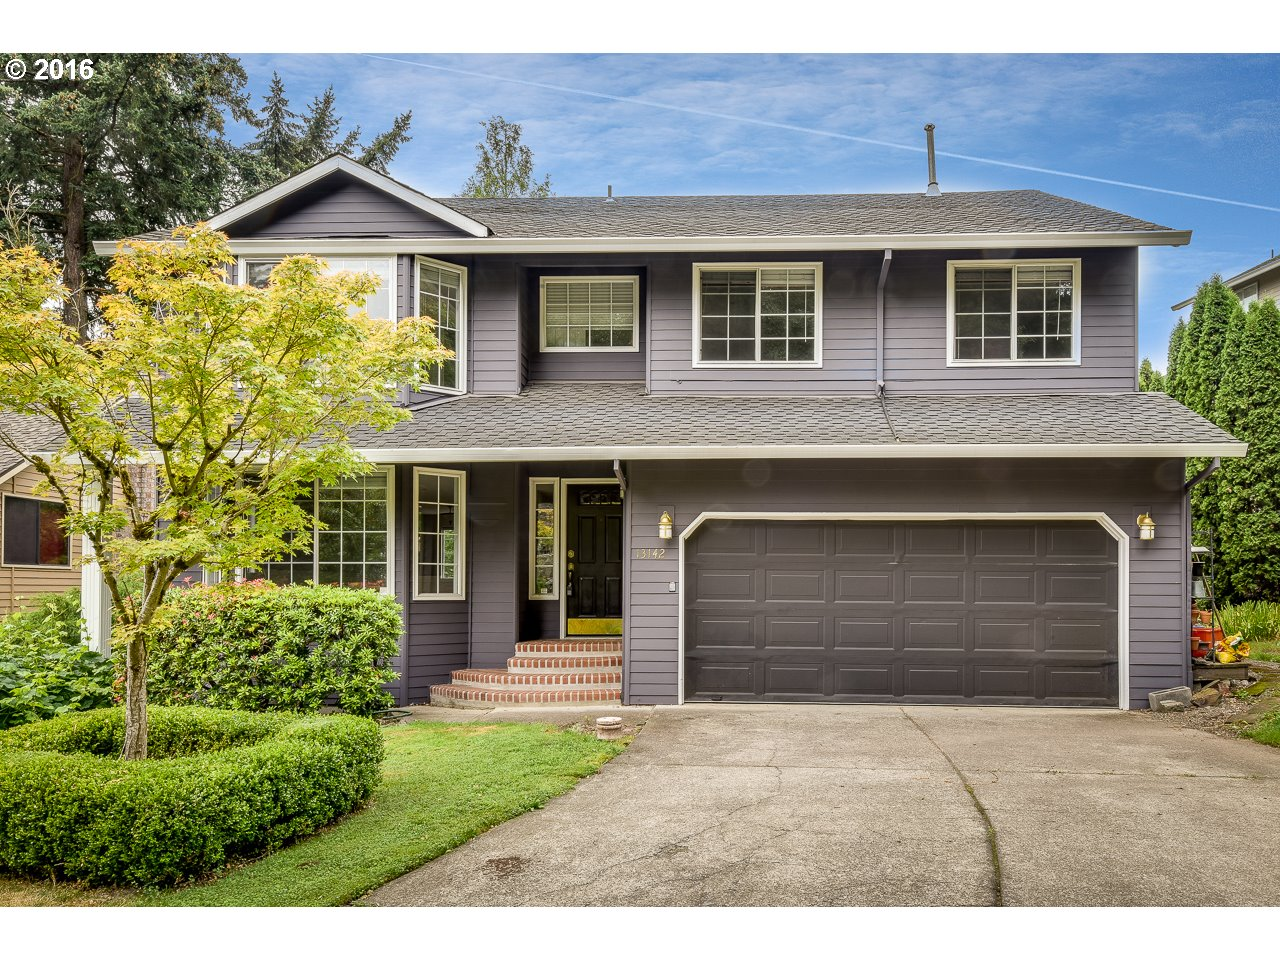 13142 PETERS RD Portland Home Listings - The Rob Levy Team Real Estate